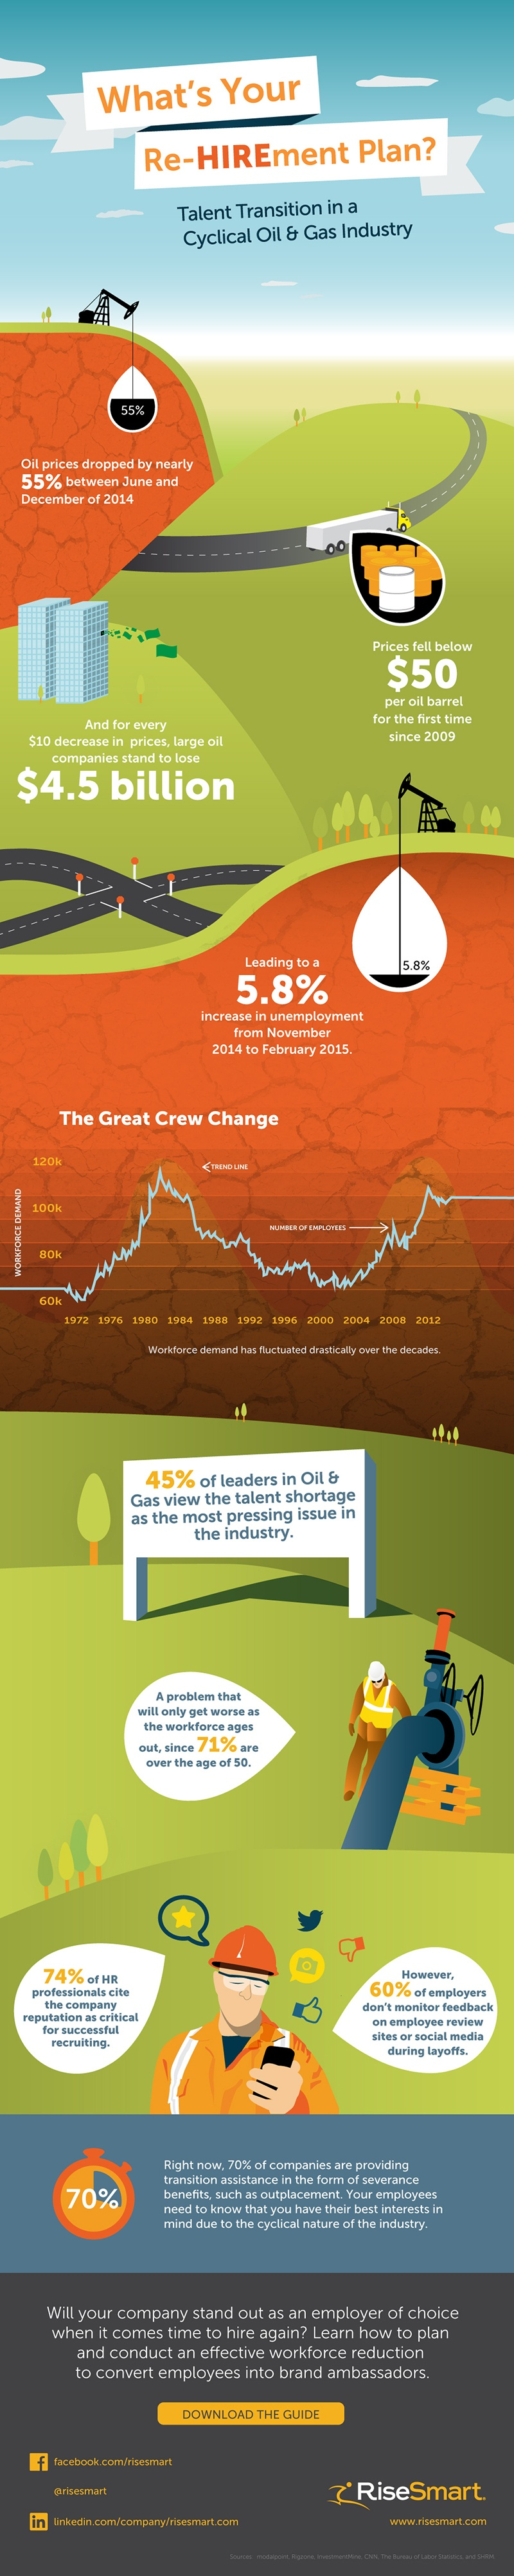 Talent Transition in a Cyclical Oil and Gas Industry